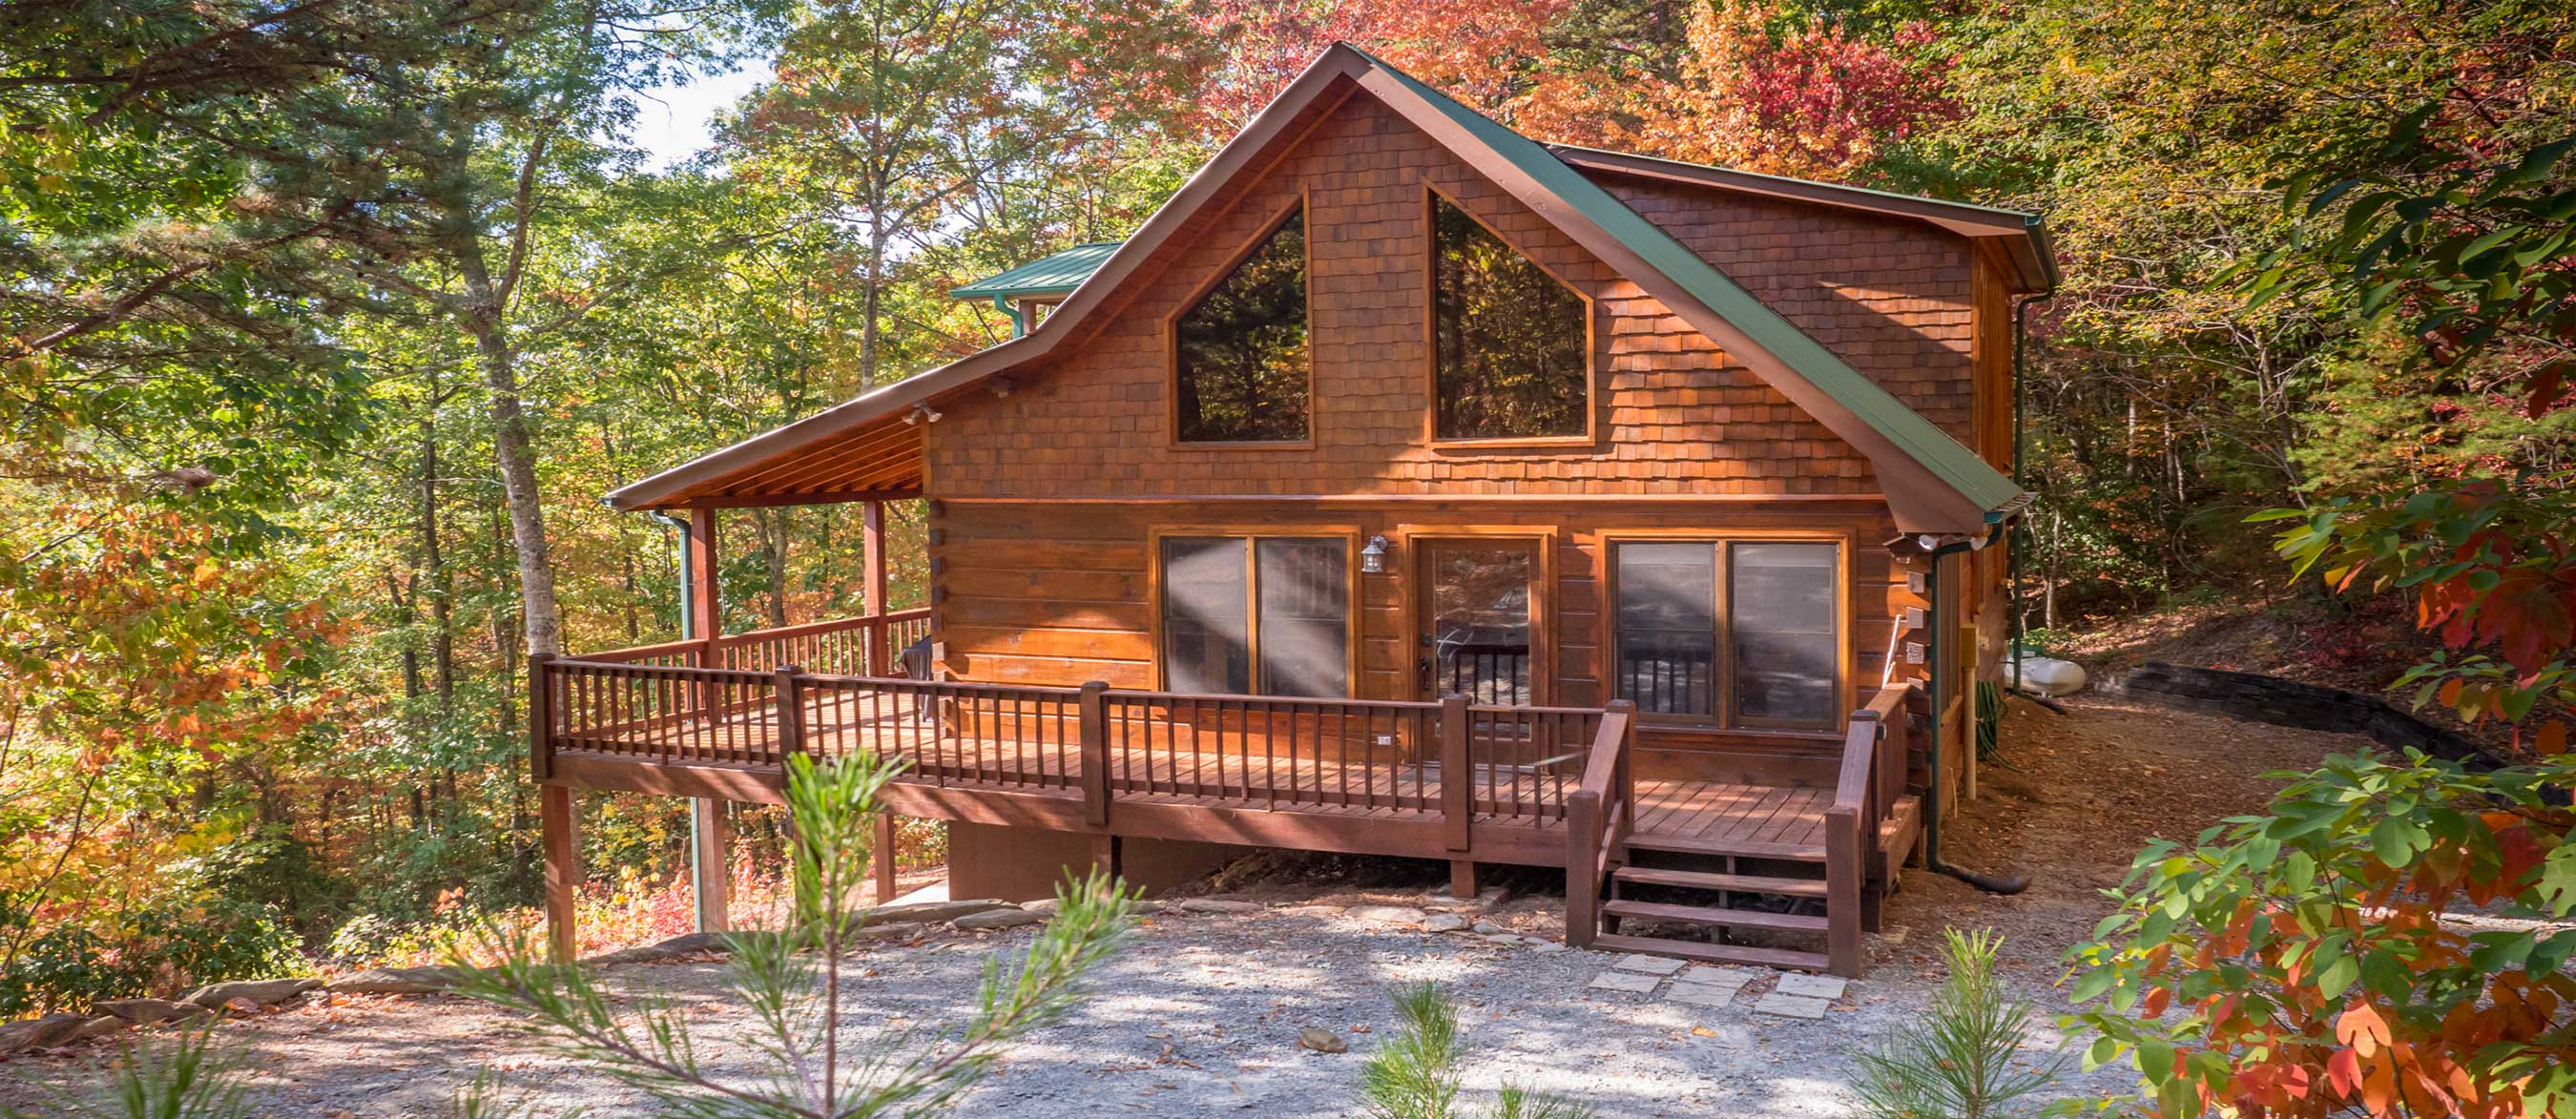 georgia in blue detailcabin rentals simply cabins rental ridge kitchen ga amazing cabin